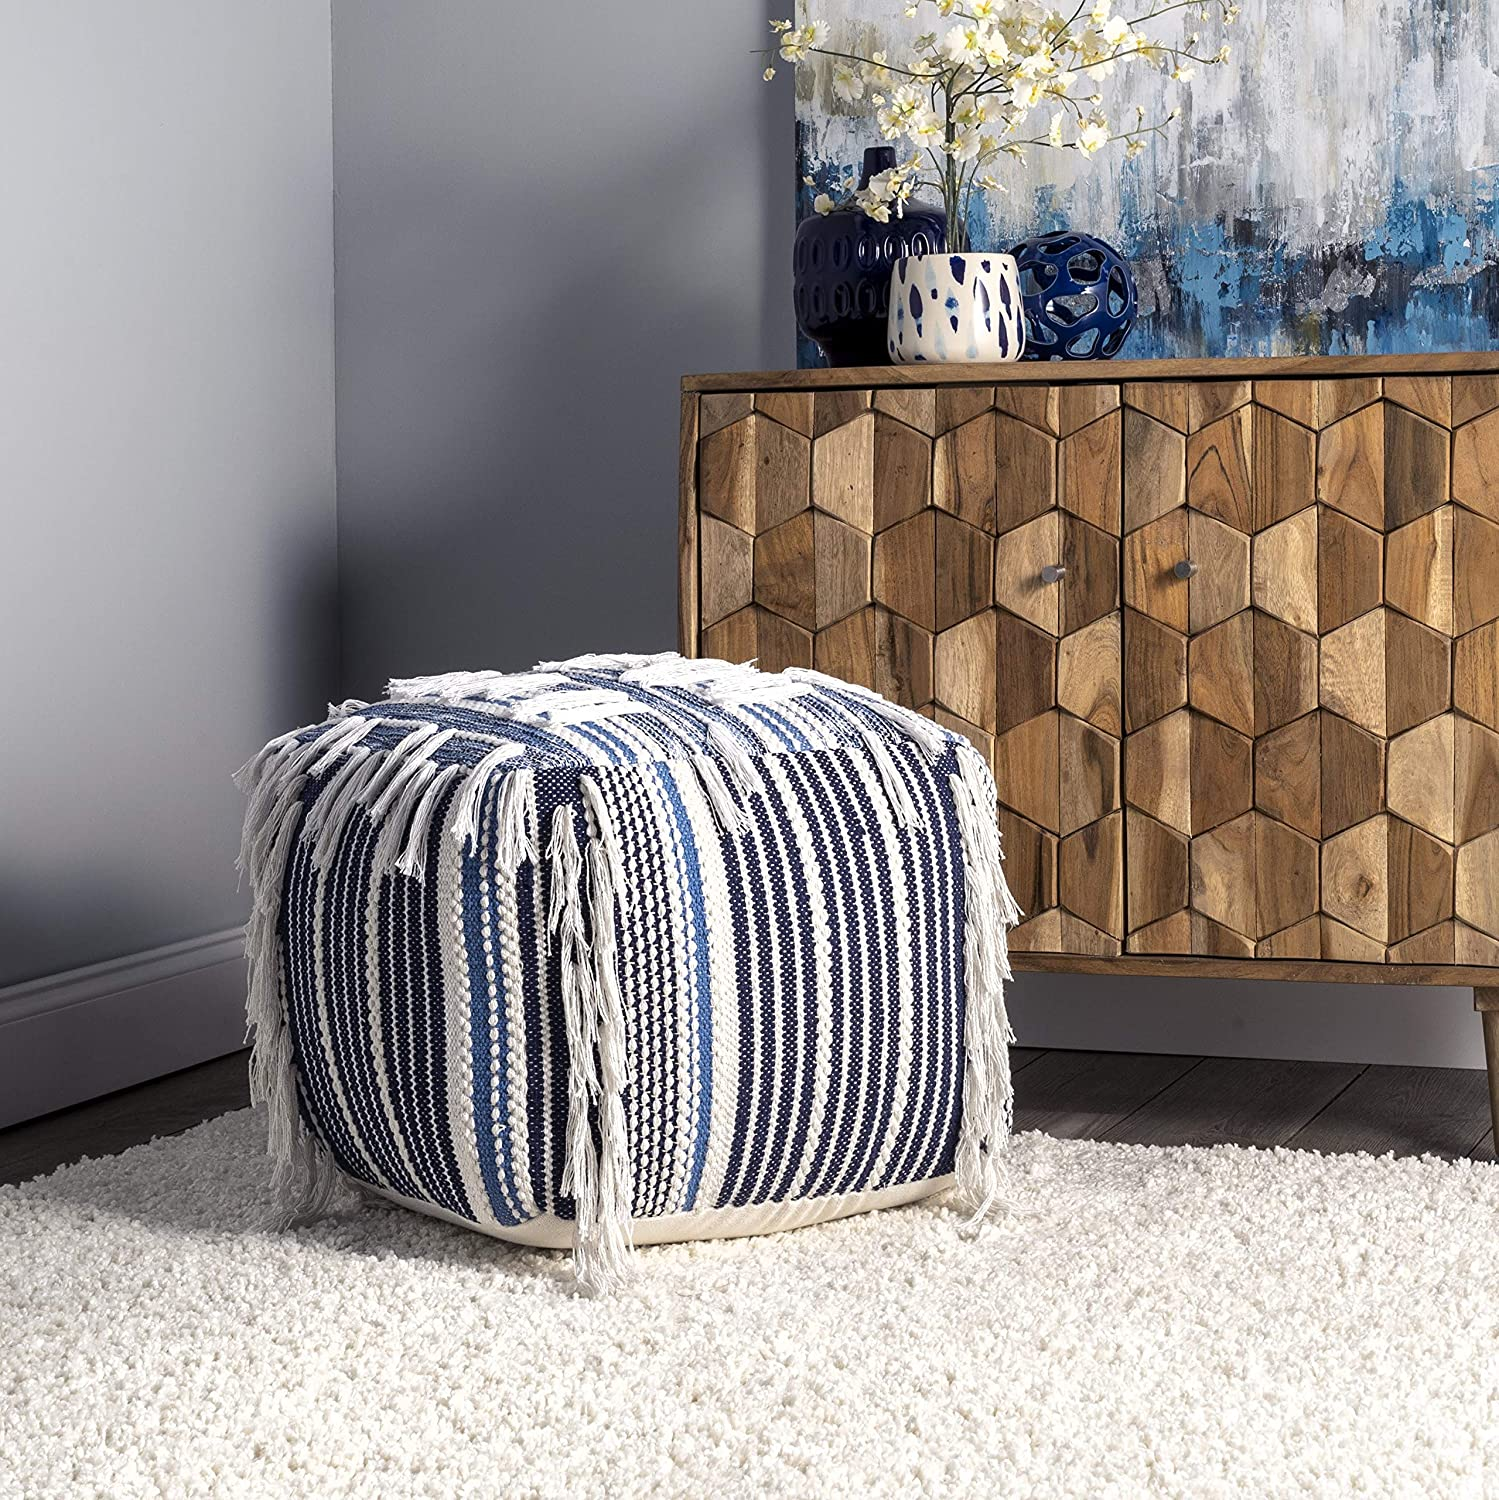 nuLOOM Hydra Denim Striped Pouf Filled All stores are sold Max 62% OFF Fringe Ottoman